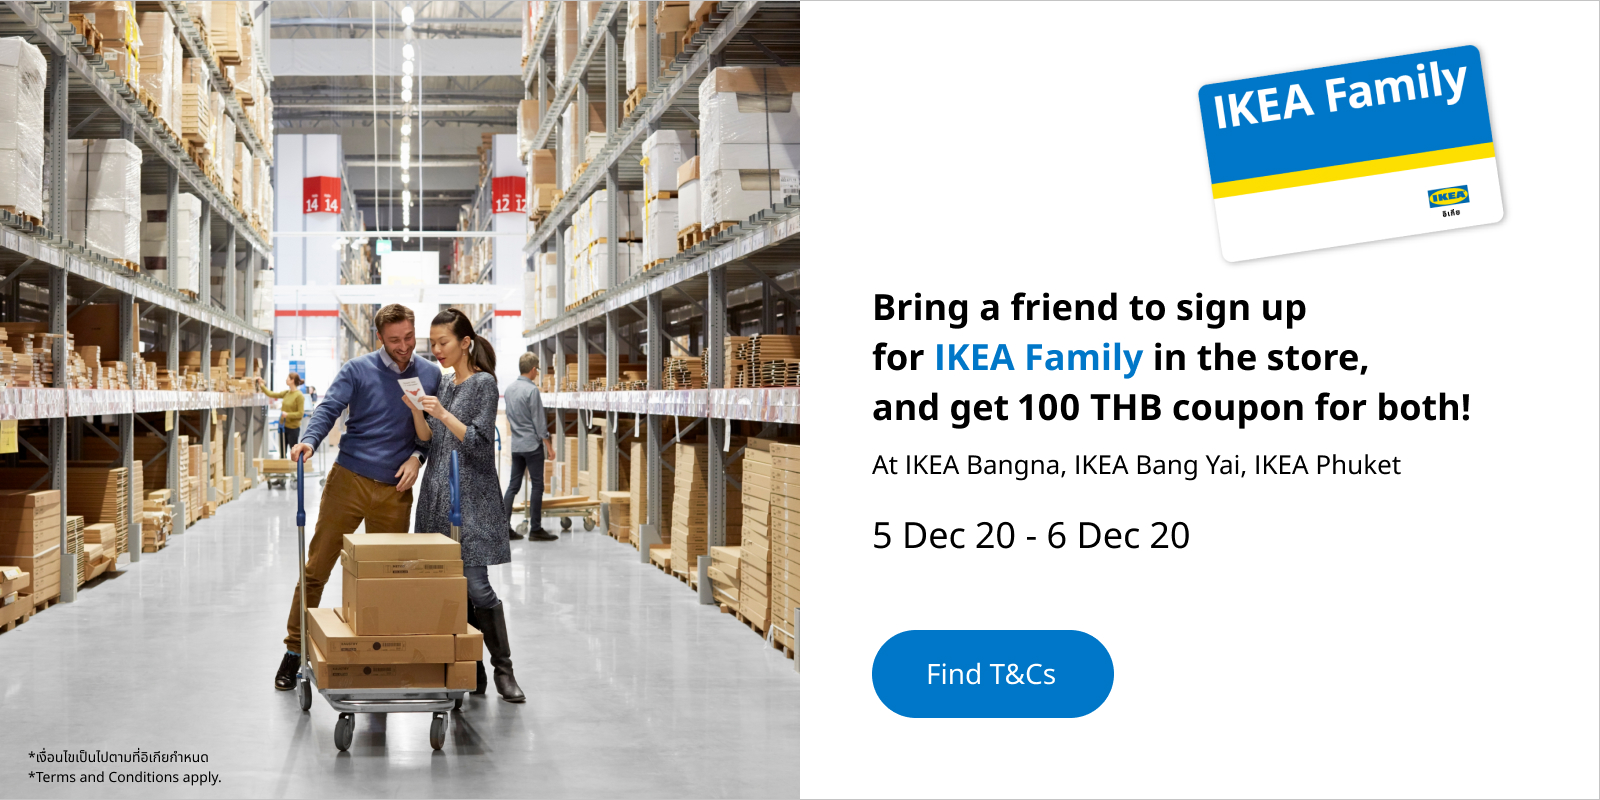 IKEA Family - Referral Activities